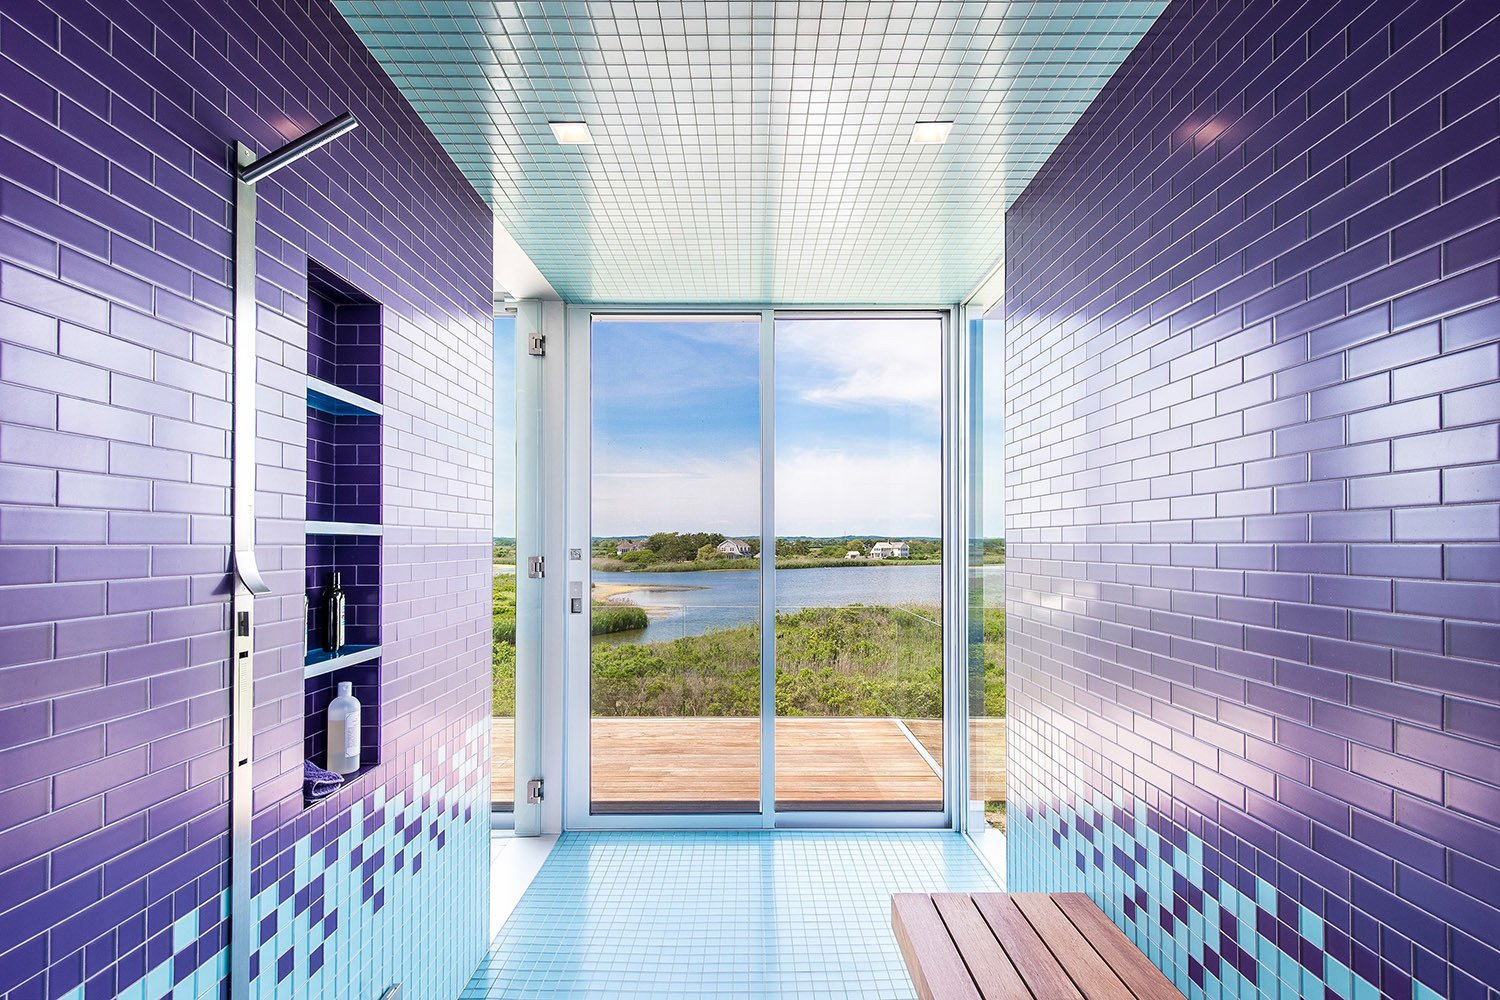 Consider this lively bathroom that sits within a recently completed waterfront home in Bridgehampton, New York. Situated on two-and-a-half acres of land with 360-degree views of the nearby bay and ocean, it's covered with brightly colored floor-to-ceiling tiles that reflect the shades of the neighboring water. One step through the sliding glass doors and you'll find yourself on an open terrace.